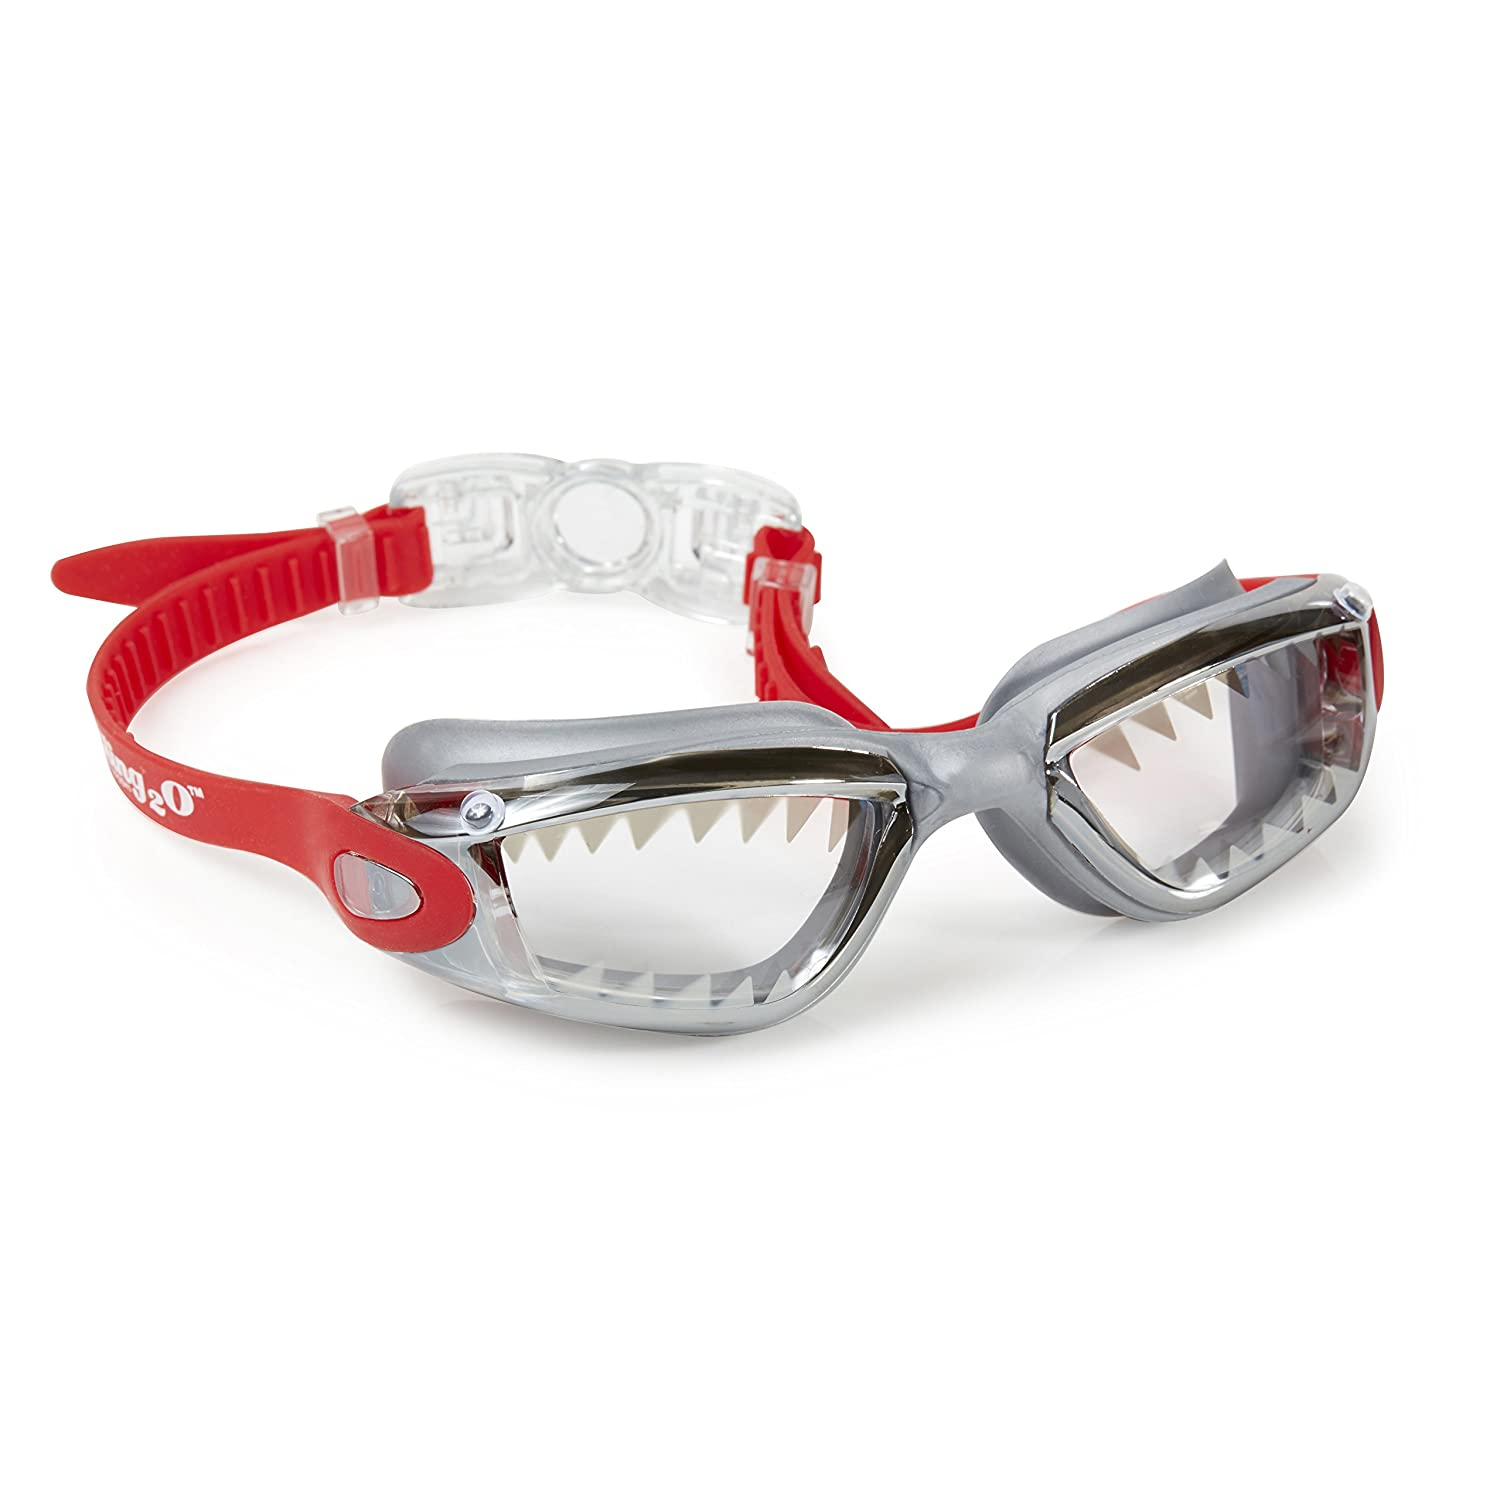 Swimming Goggles for Kids by Bling2O - Anti Fog, No Leak, Non Slip and UV Protection - Fun Water Accessory Includes Hard Case